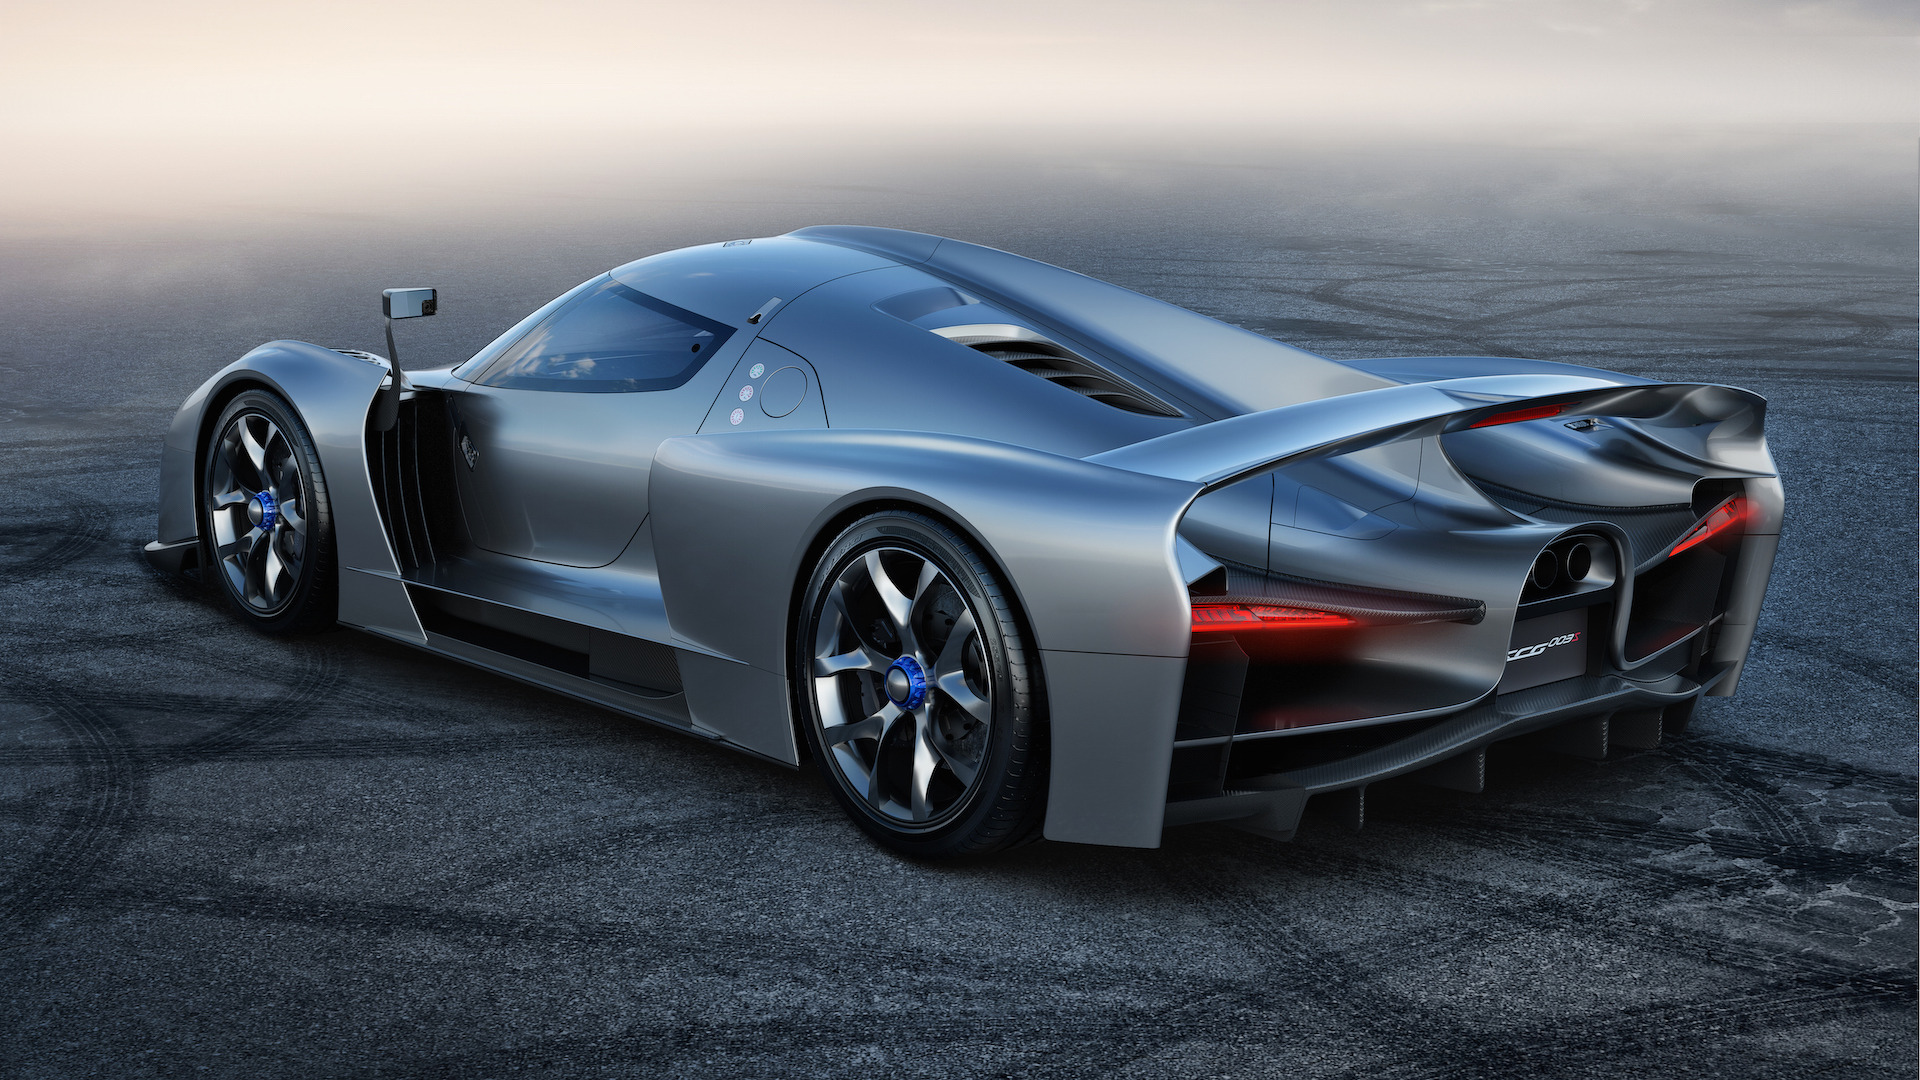 Glickenhaus SCG003S wants to be the fastest production car on \'Ring